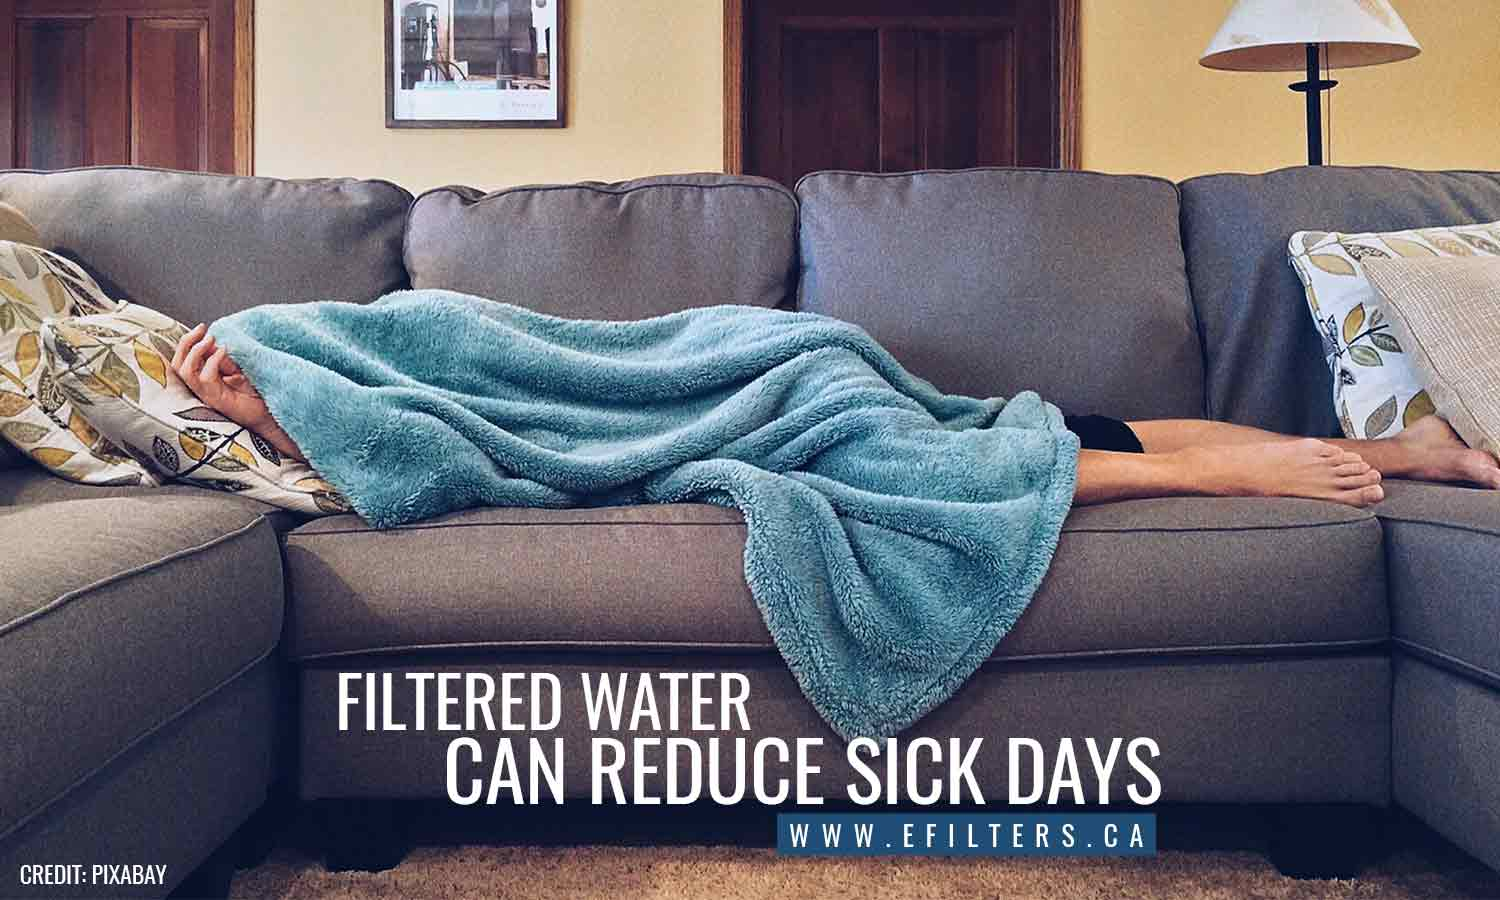 Filtered water can reduce sick days